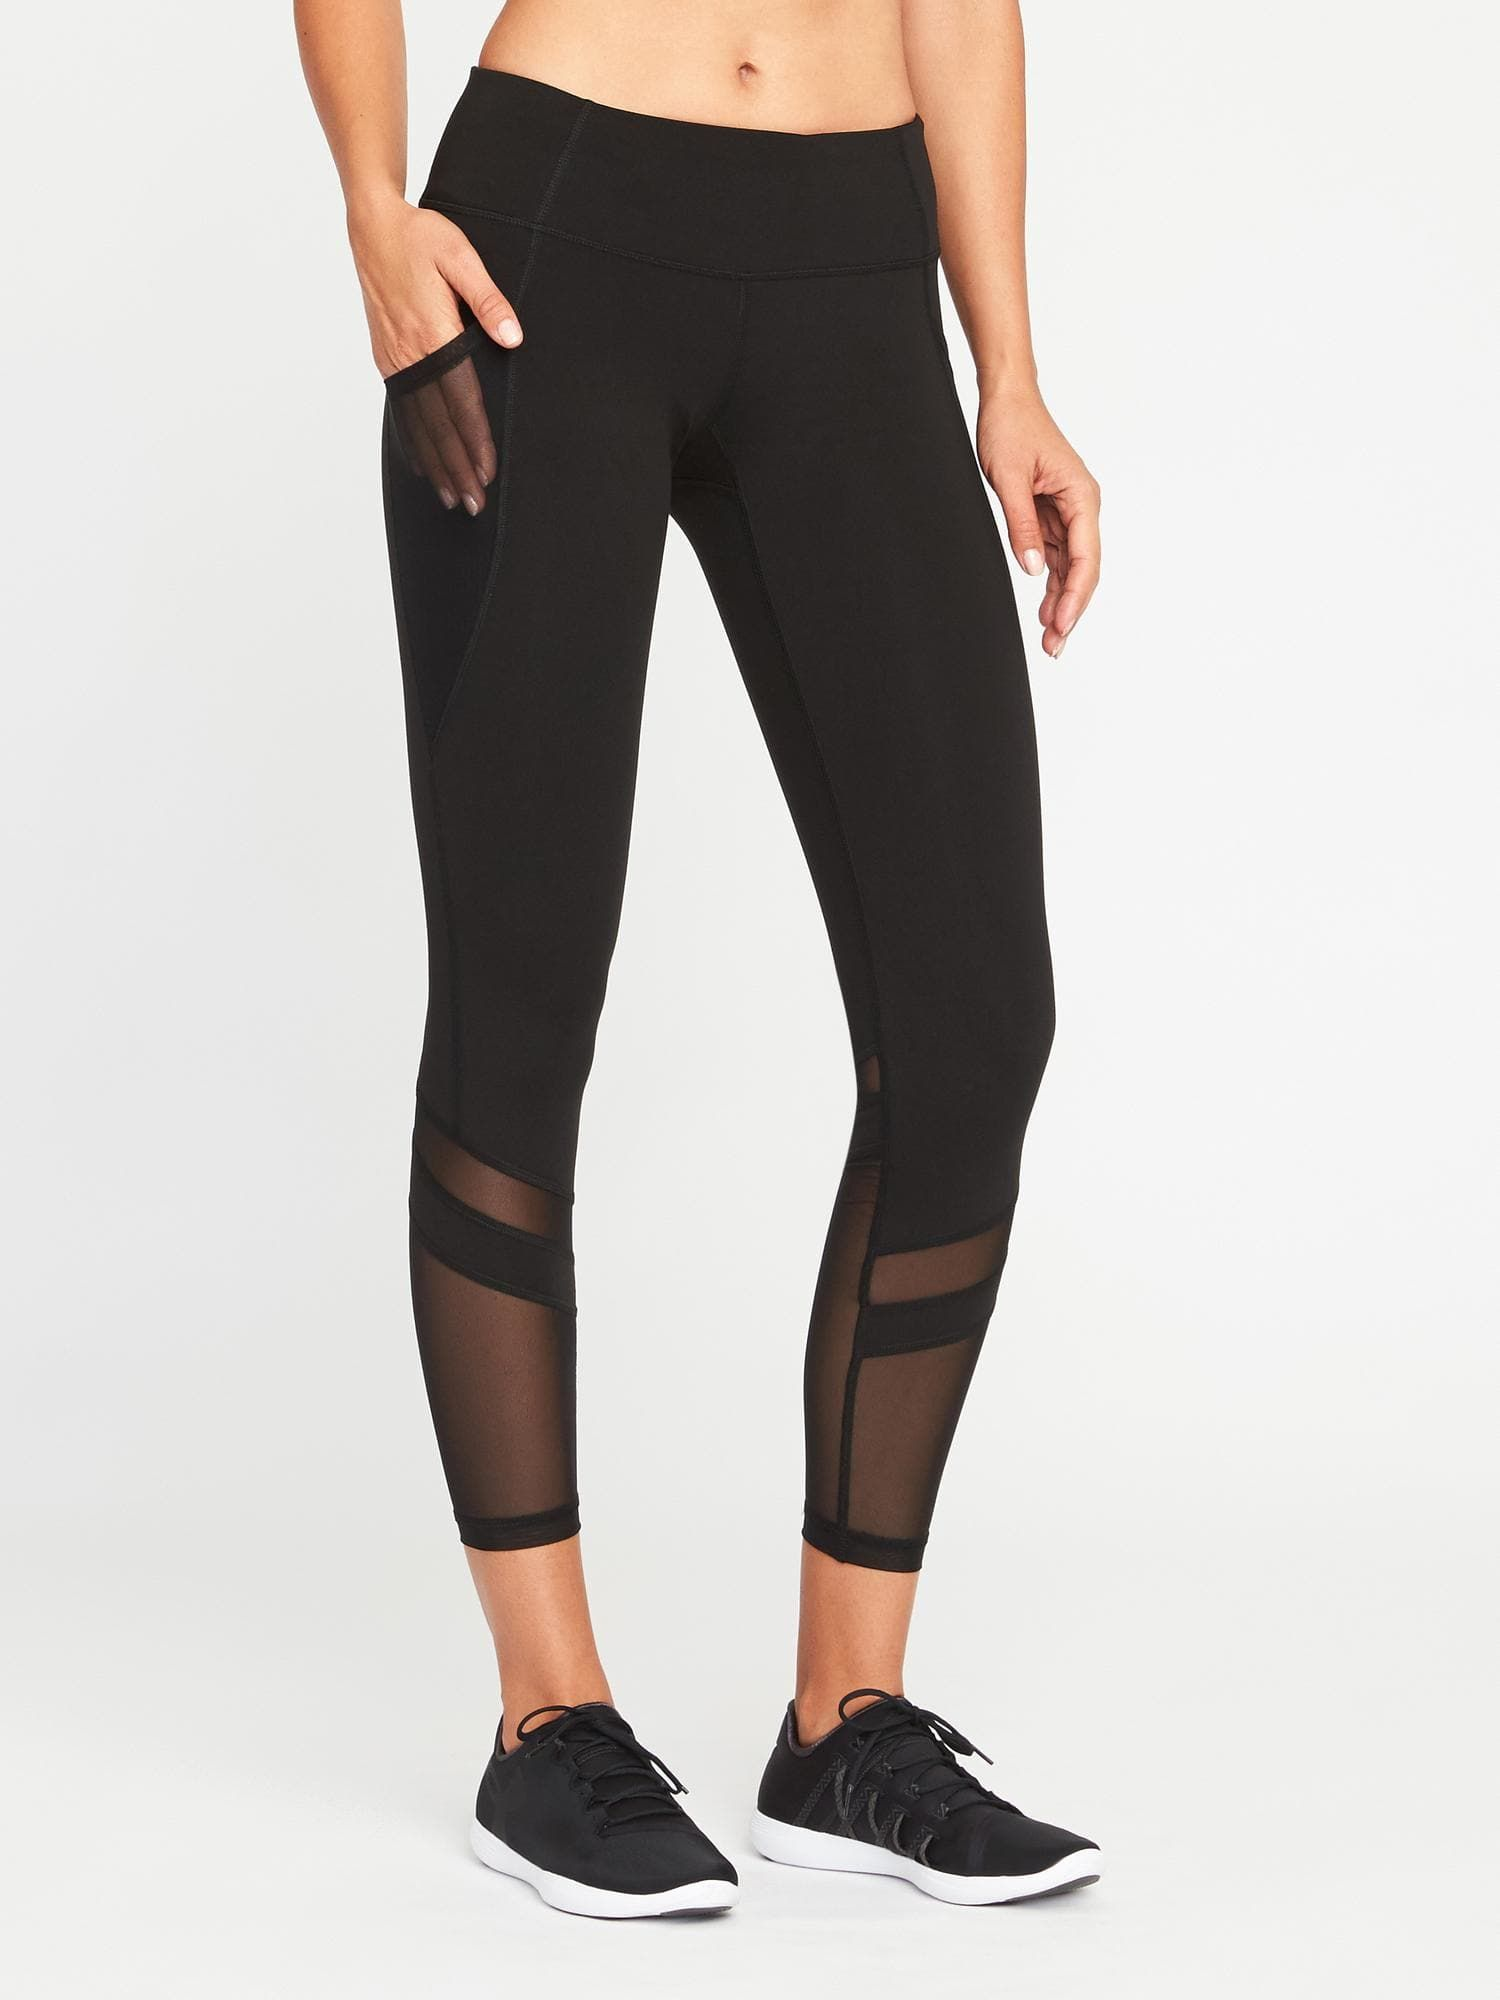 aea95df4cc Mid-Rise 7/8-Length Mesh-Panel Compression Leggings for Women | Old Navy